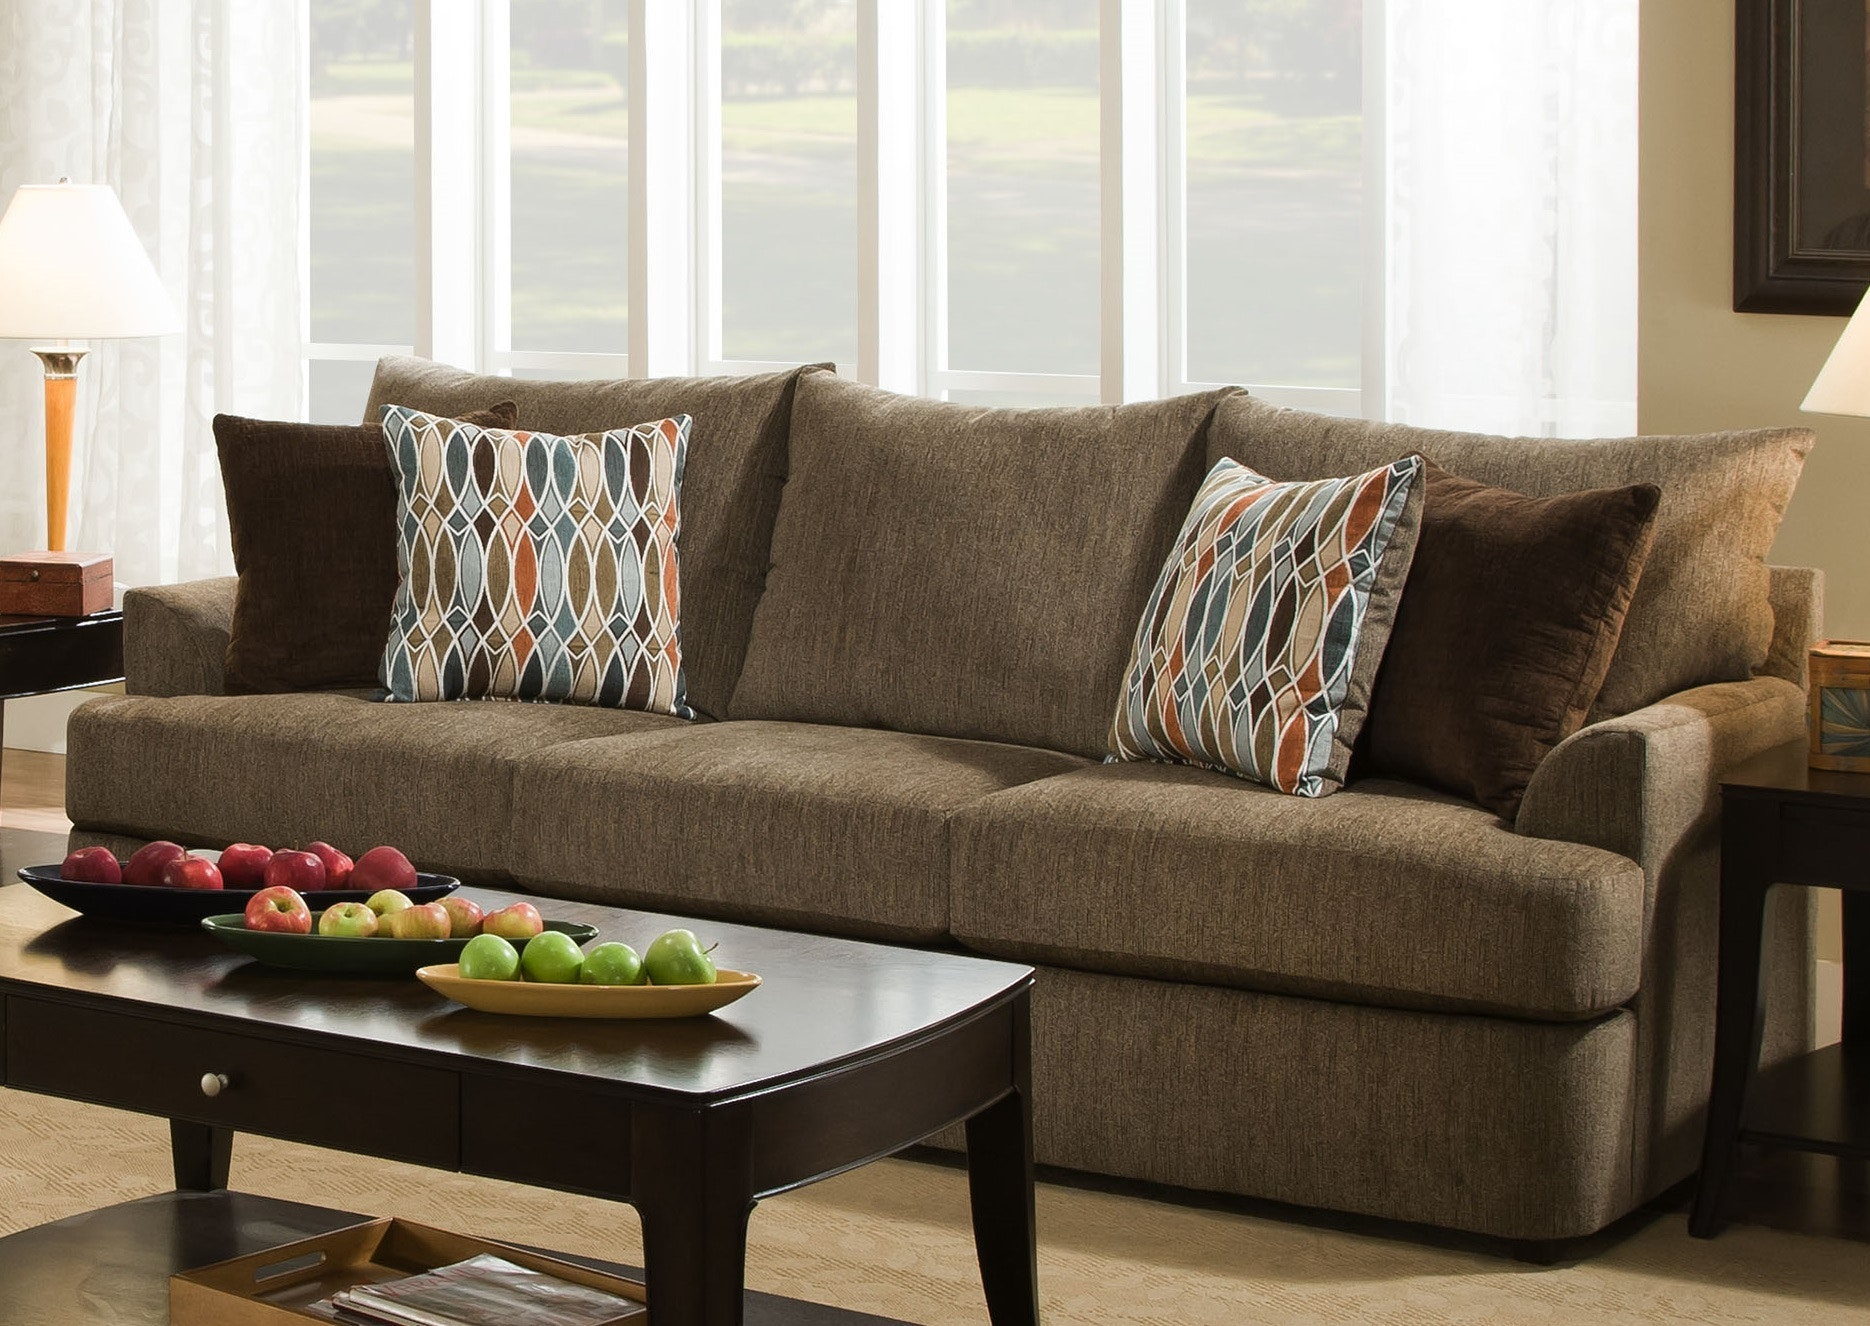 Simmons Flannel Charcoal Sofa Big Lots By Simmons Flannel Charcoal Sofa